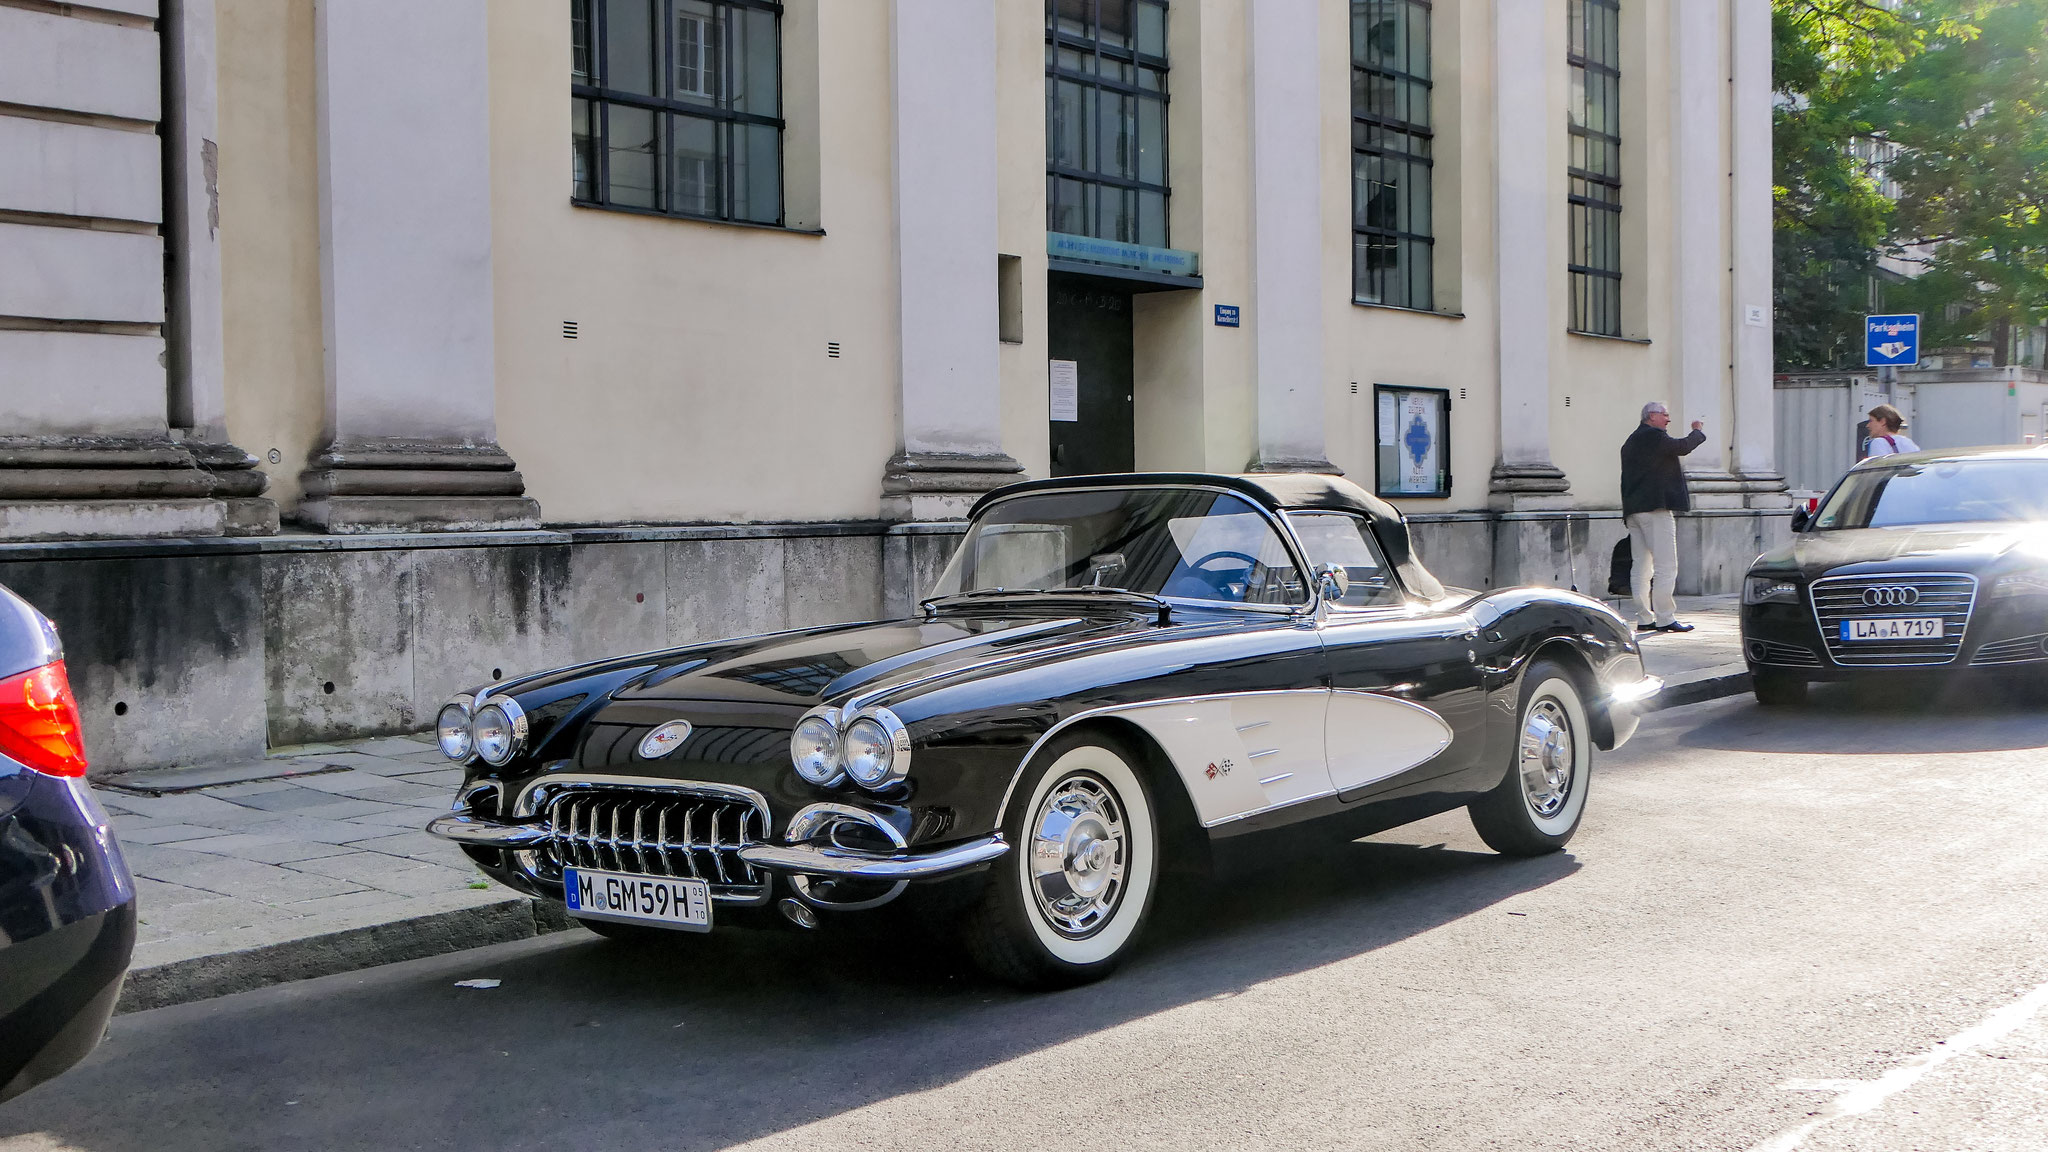 Chevrolet Corvette C1 - M-GM-59H